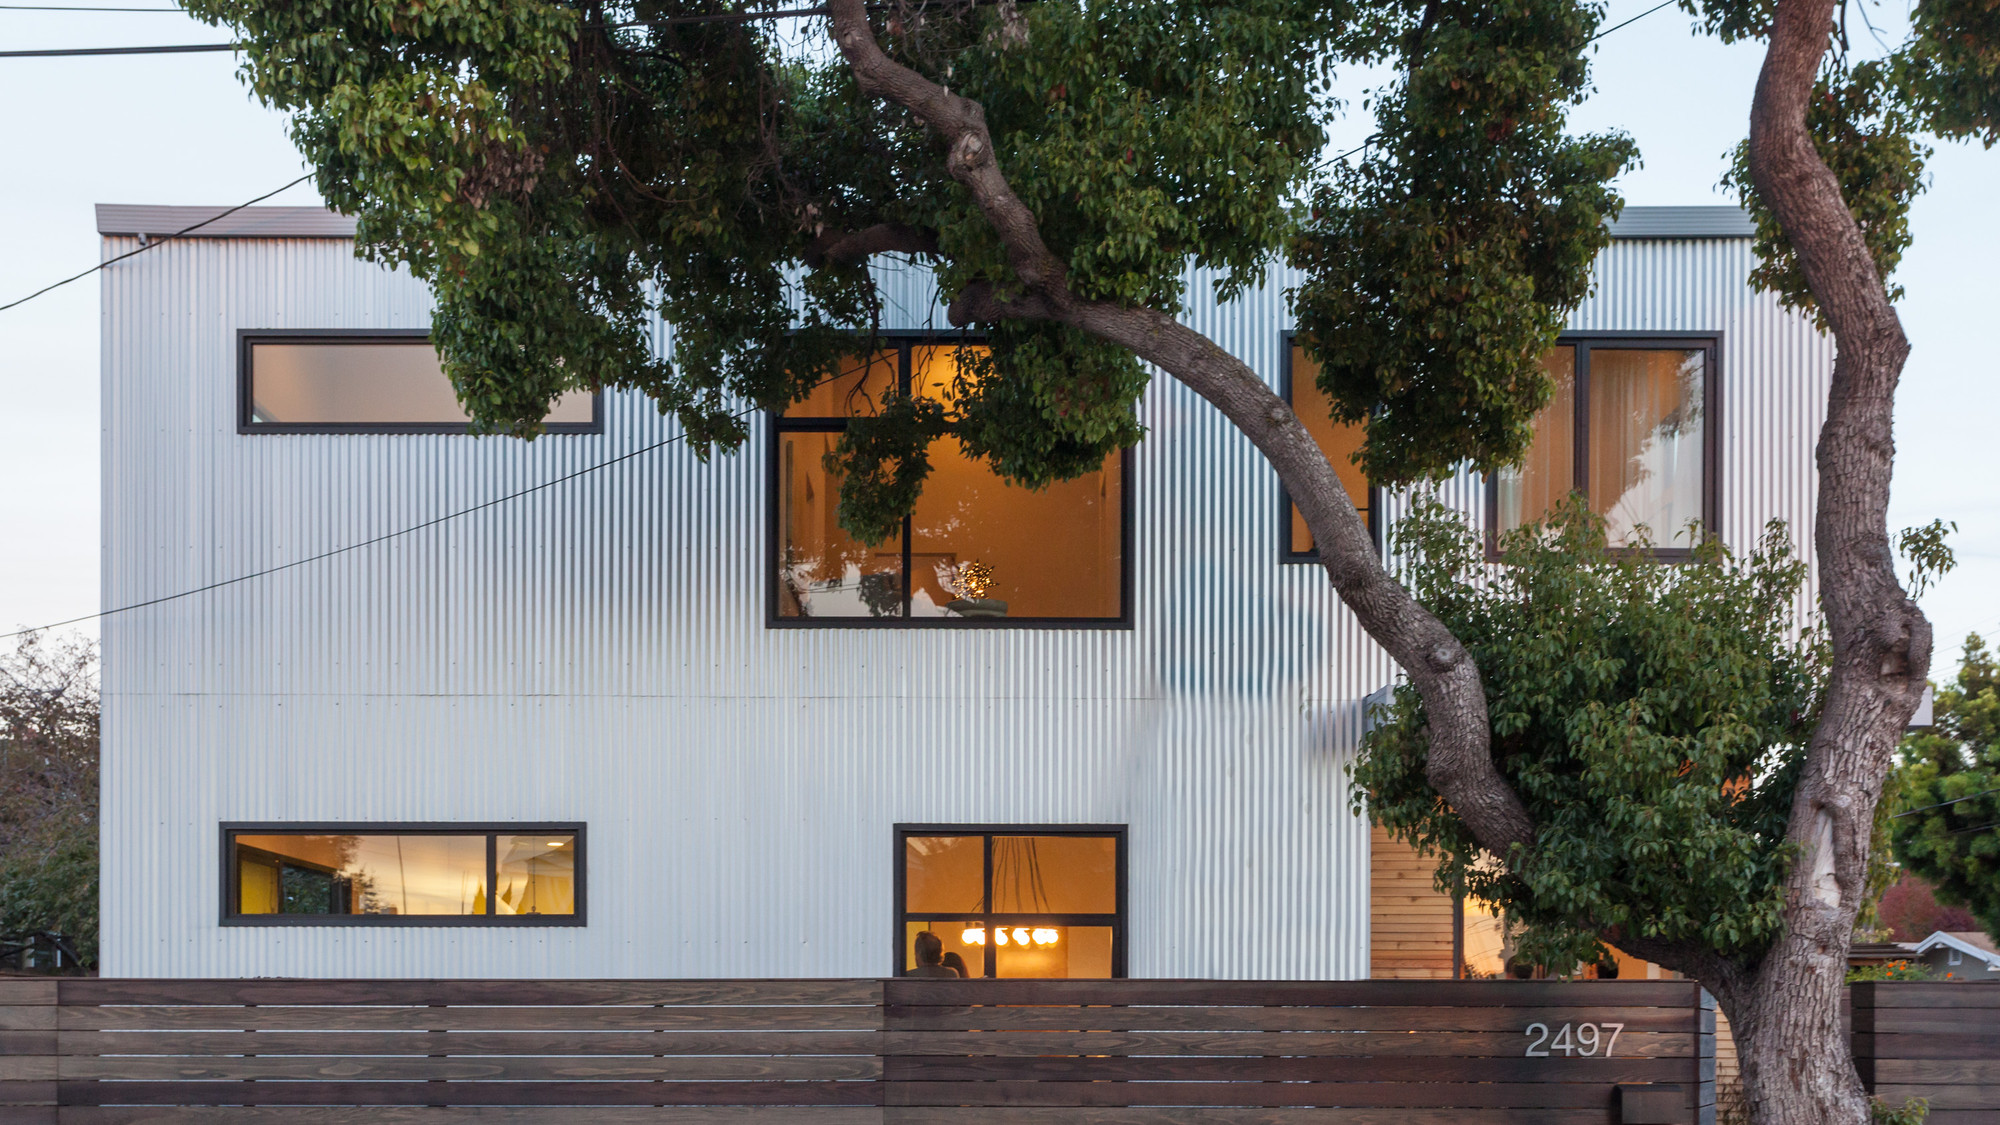 Casa na Valley Street / Baran Studio Architecture, © Peter Lyons